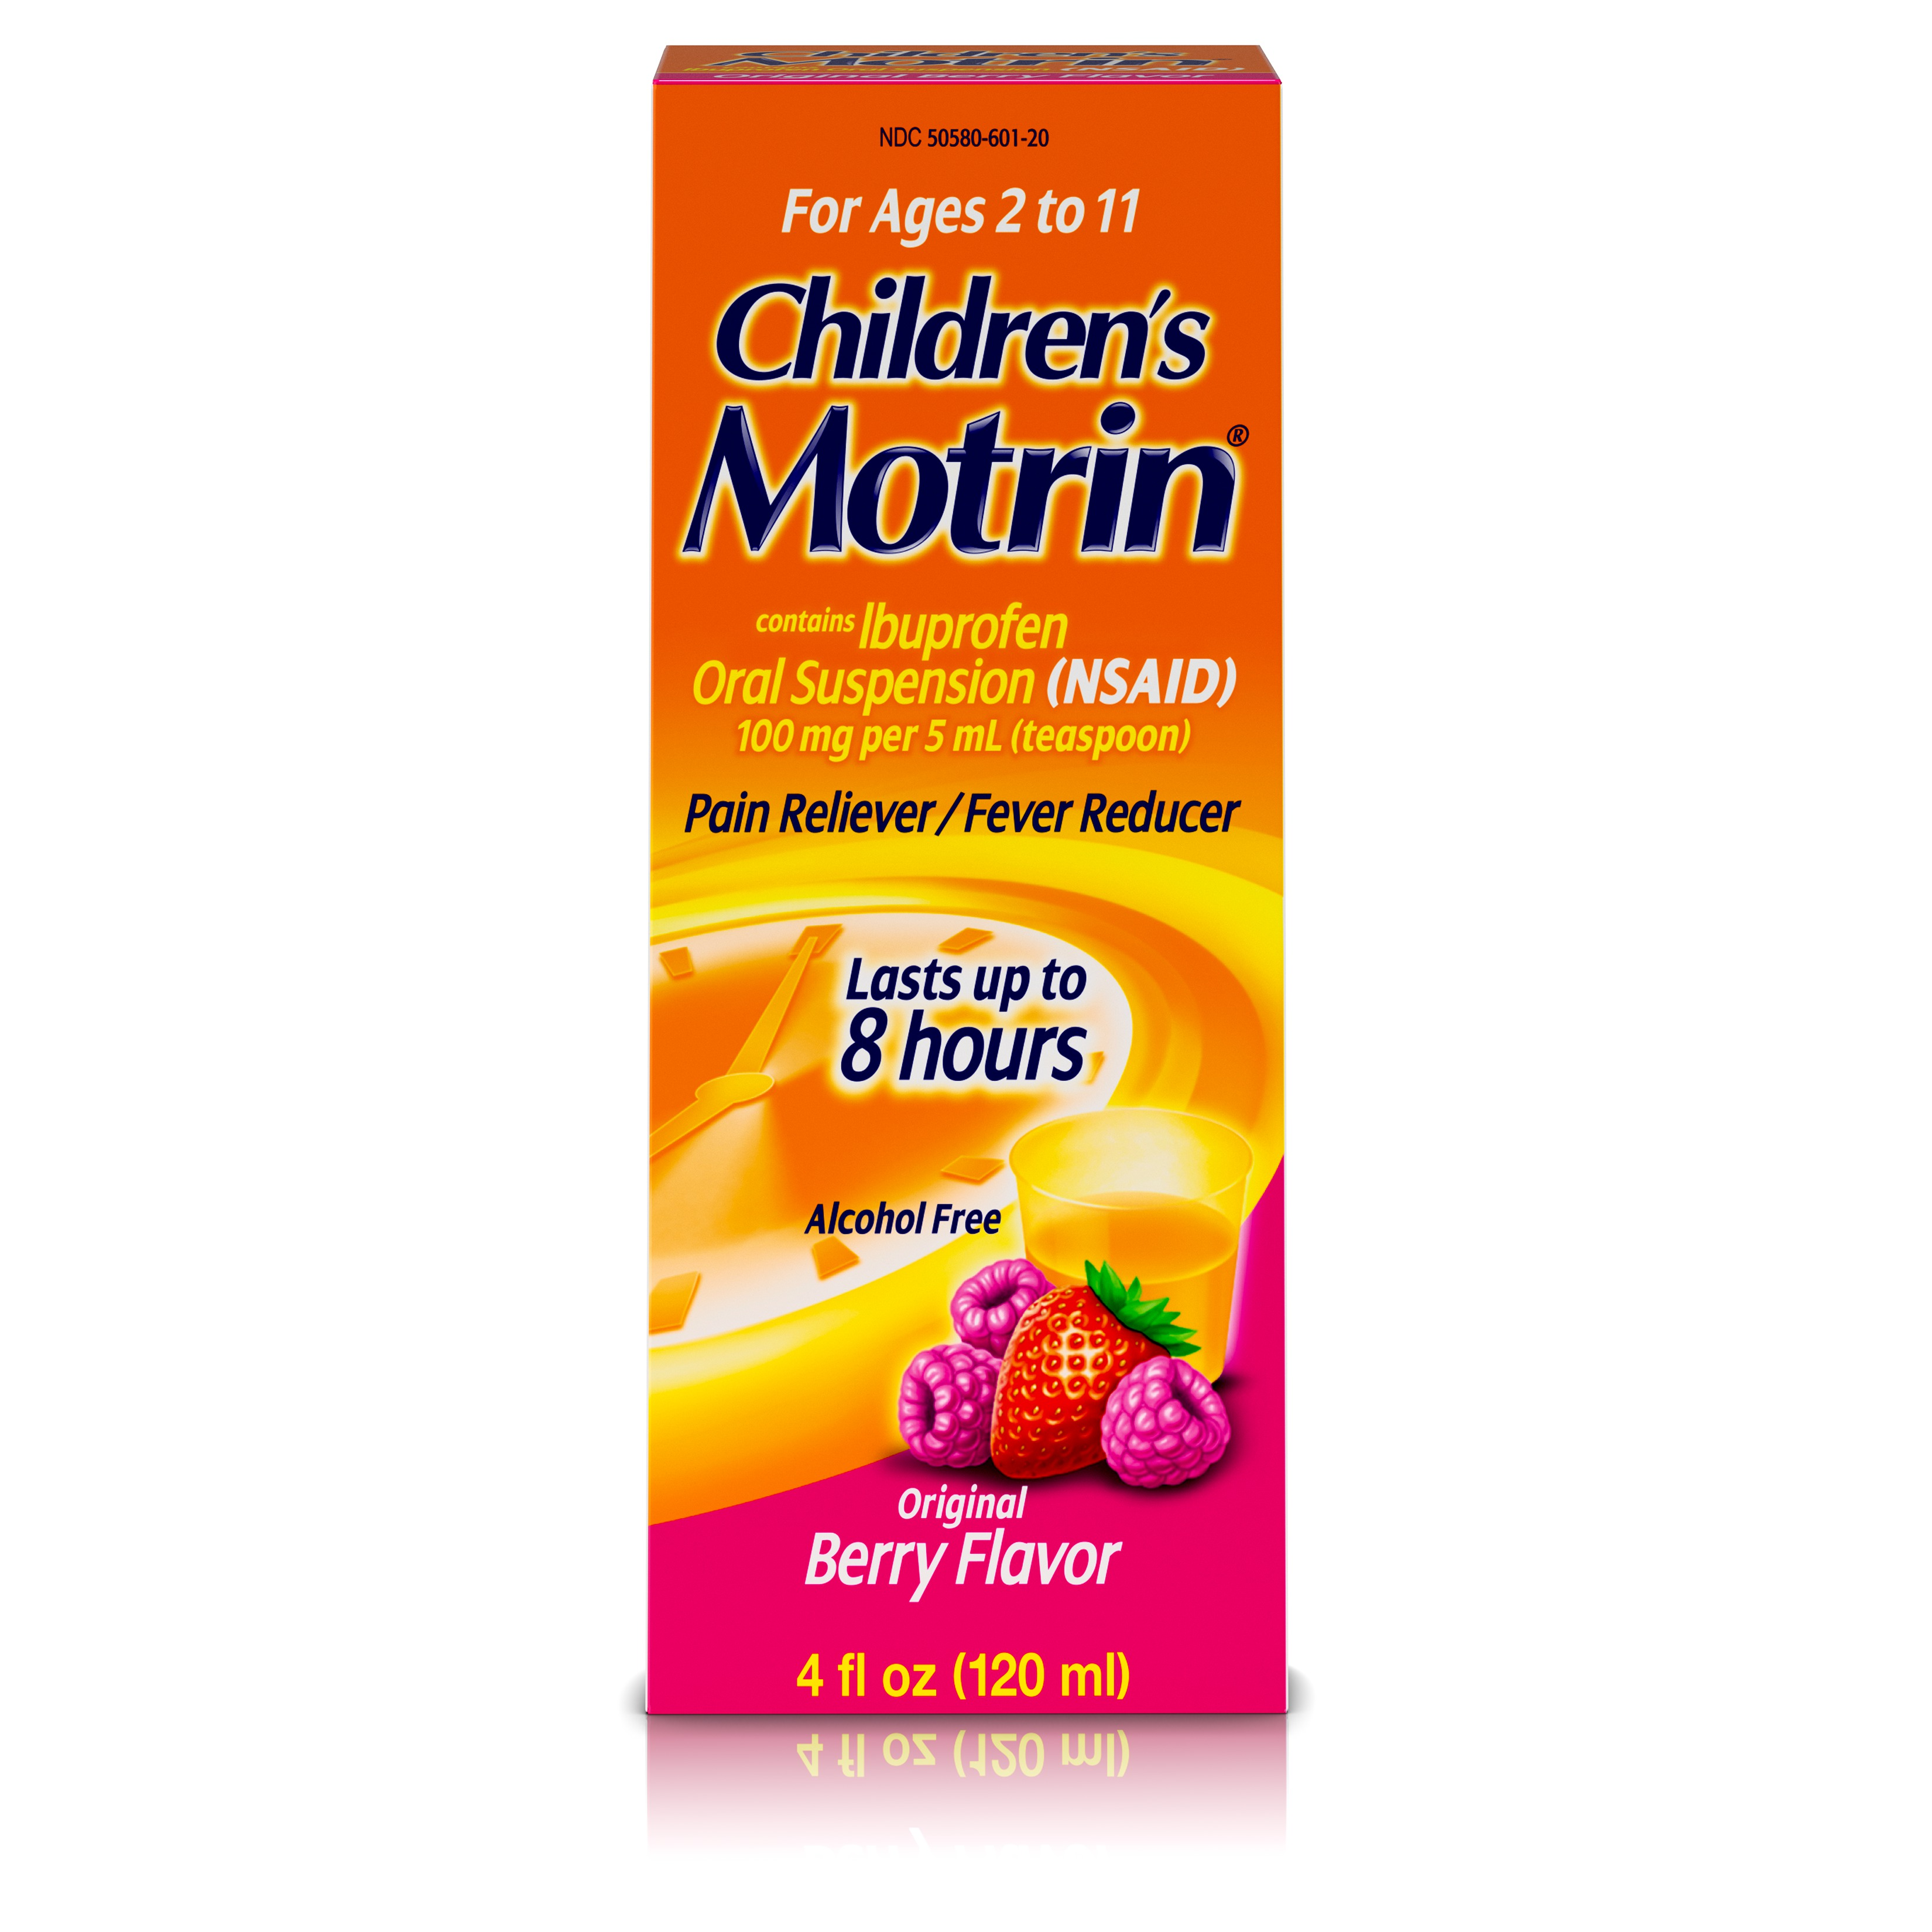 Children's Motrin Oral Suspension, Ibuprofen,Pain Relief, 4 Oz